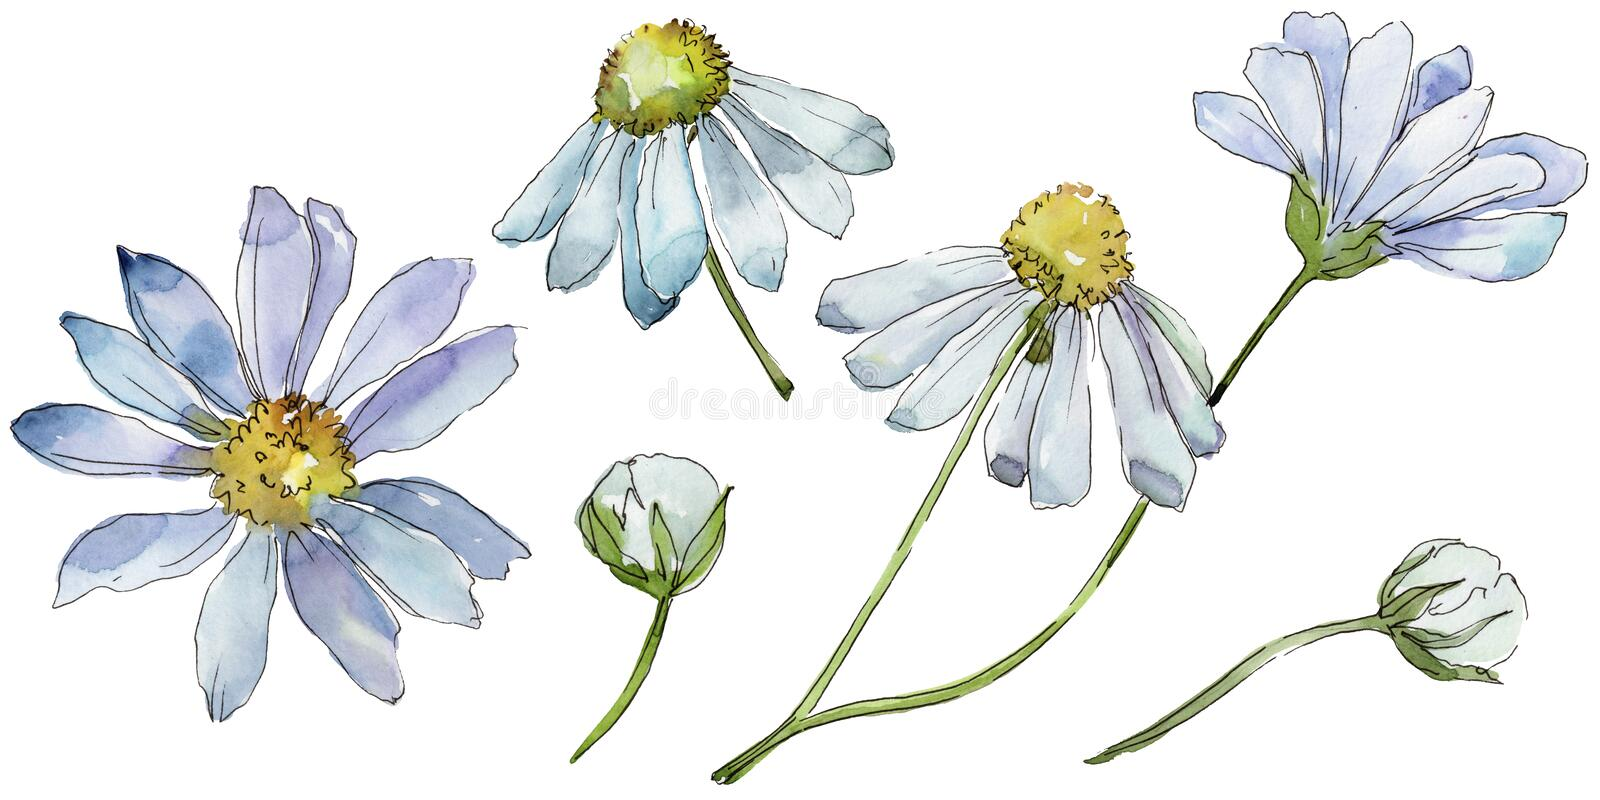 White daisy. Floral botanical flower. Wild spring leaf wildflower isolated. Aquarelle wildflower for background, texture, wrapper pattern, frame or border vector illustration